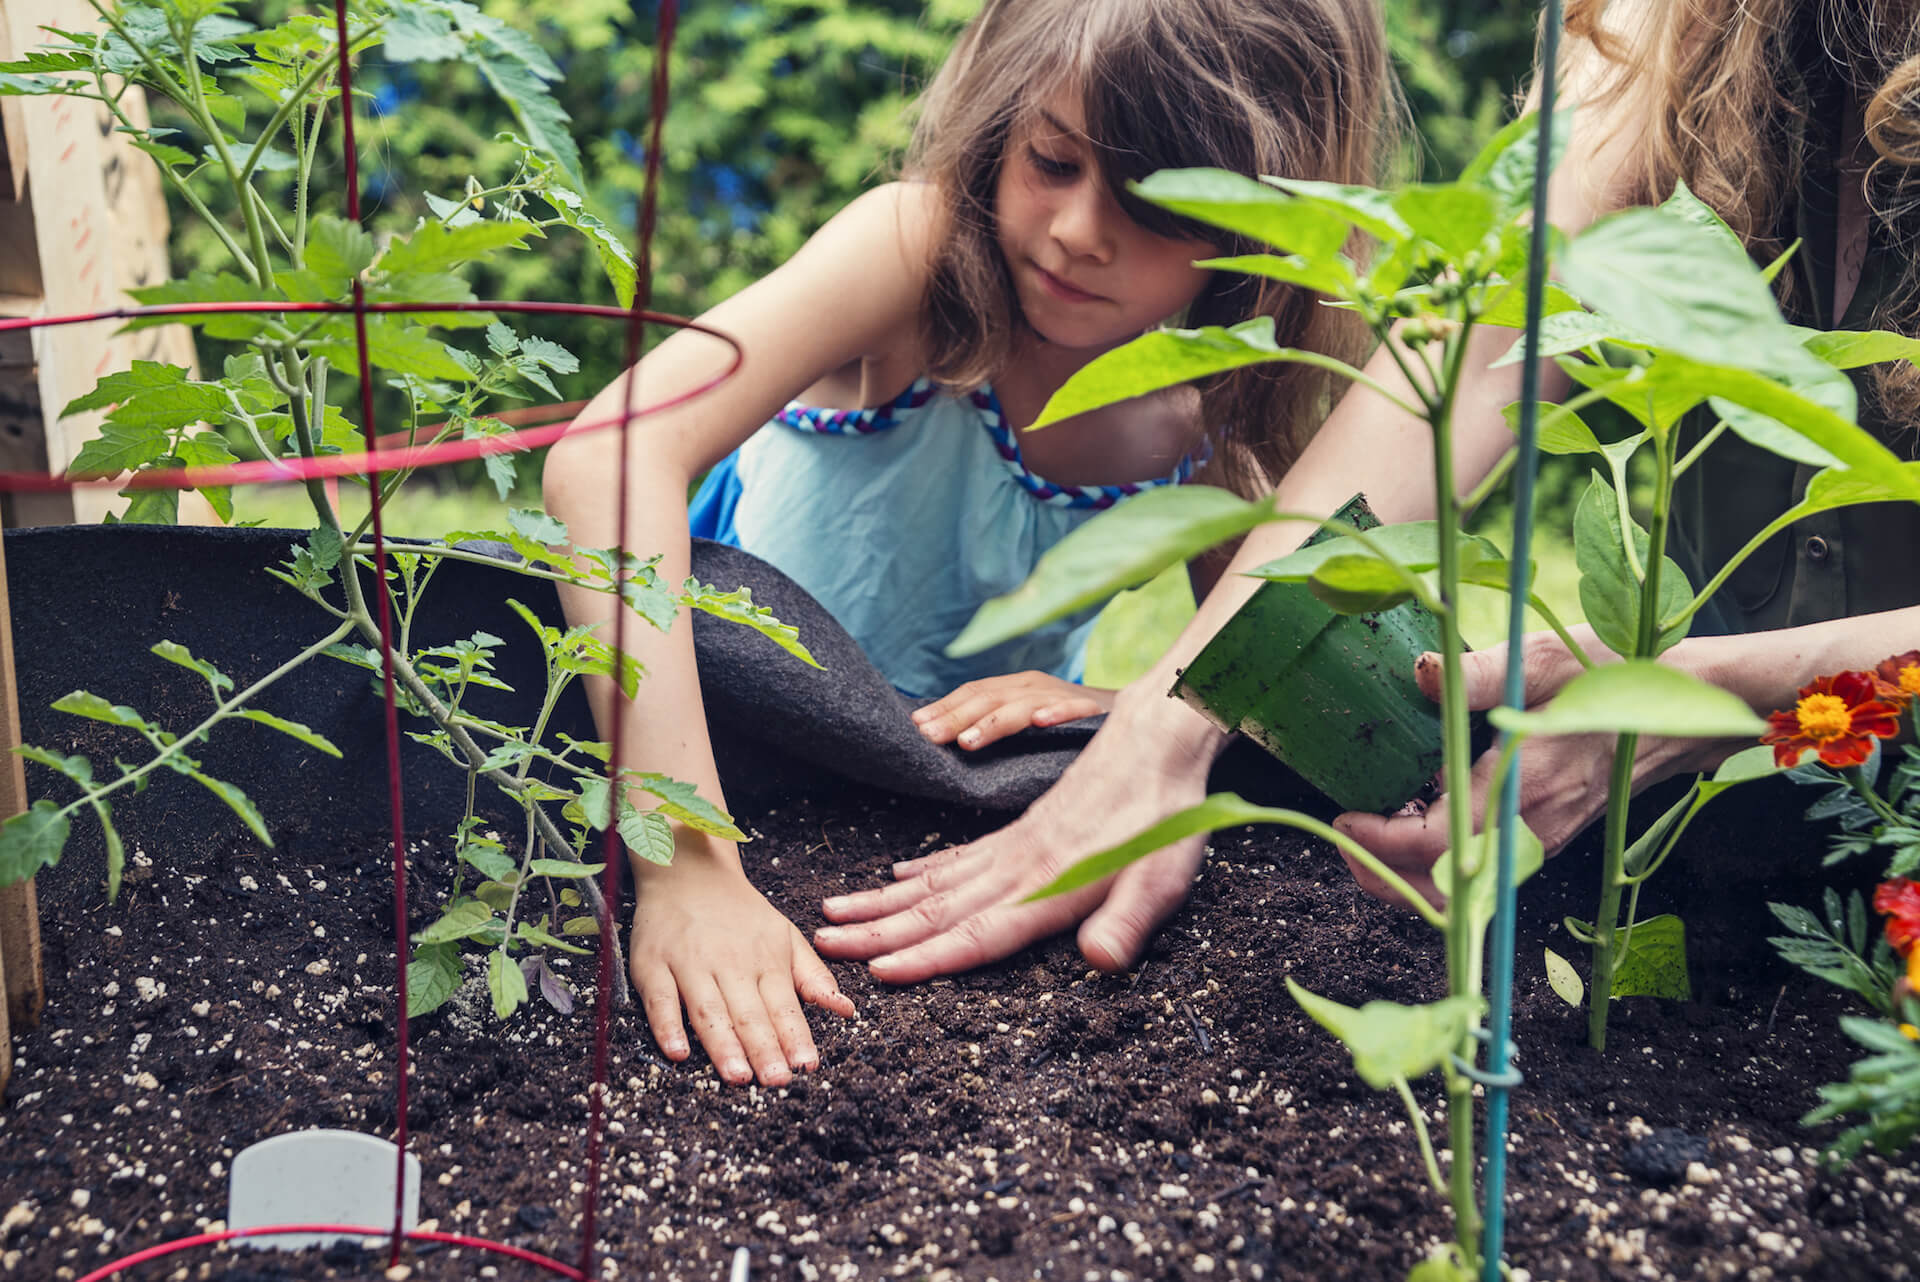 Mother and daughter gardening in a small space outdoors. Mother is showing kid how to even out the soil. Selective focus on kid's hand. Pepper plant in foreground, tomato plant present.